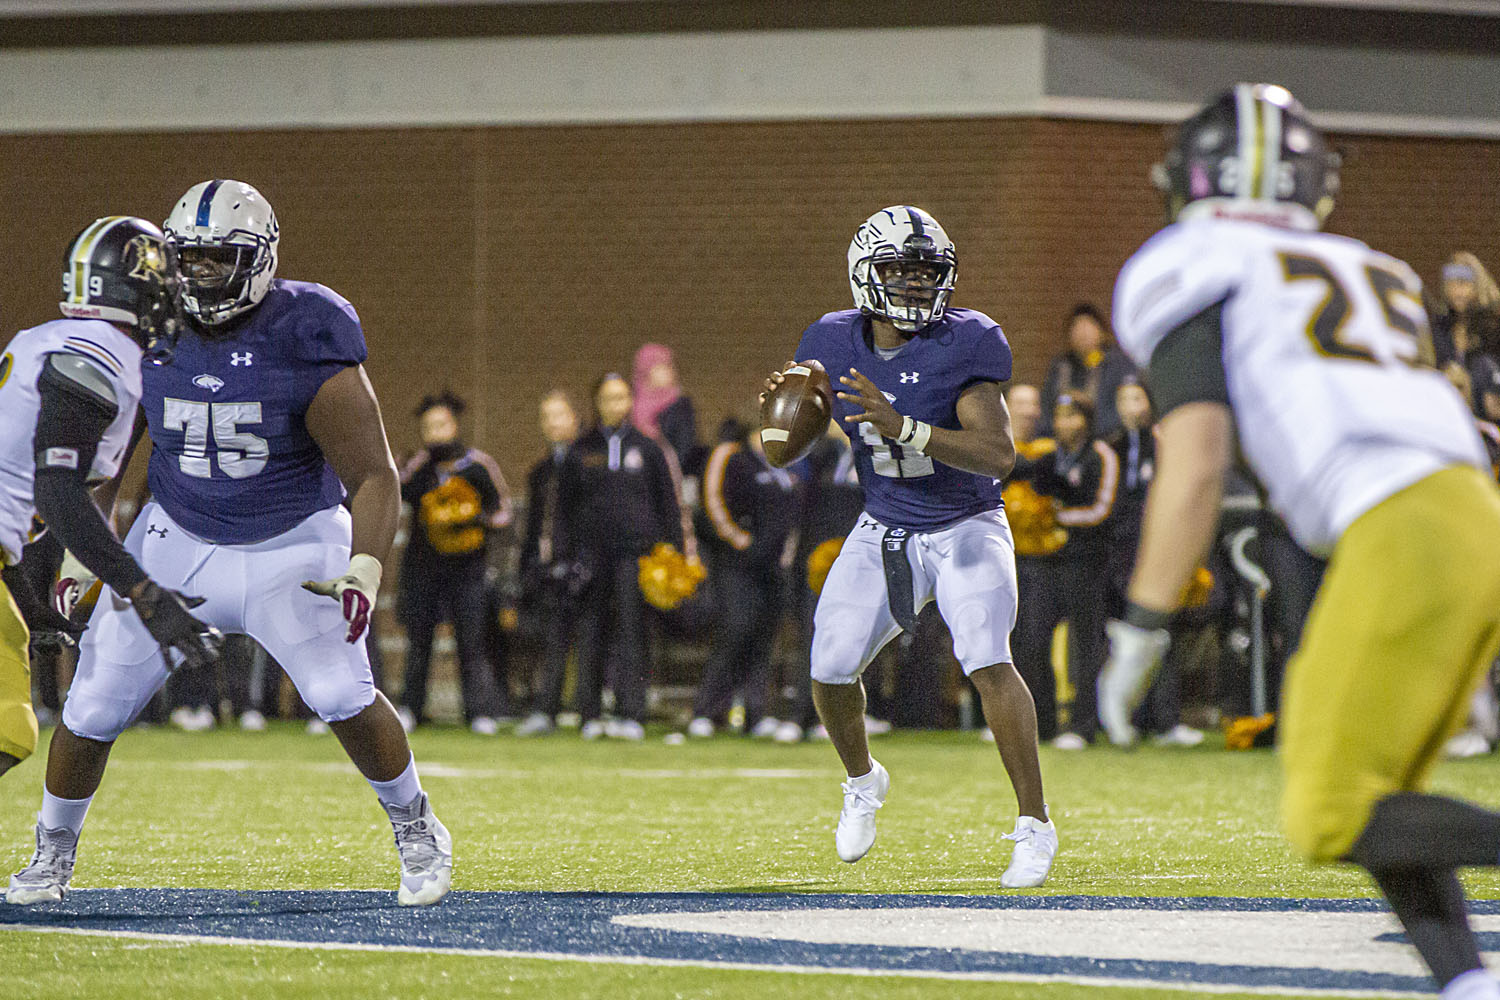 Clay-Chalkville looks to extend its nearly decade-long winning streak over Oxford as they face off in 3rd consecutive quarterfinal